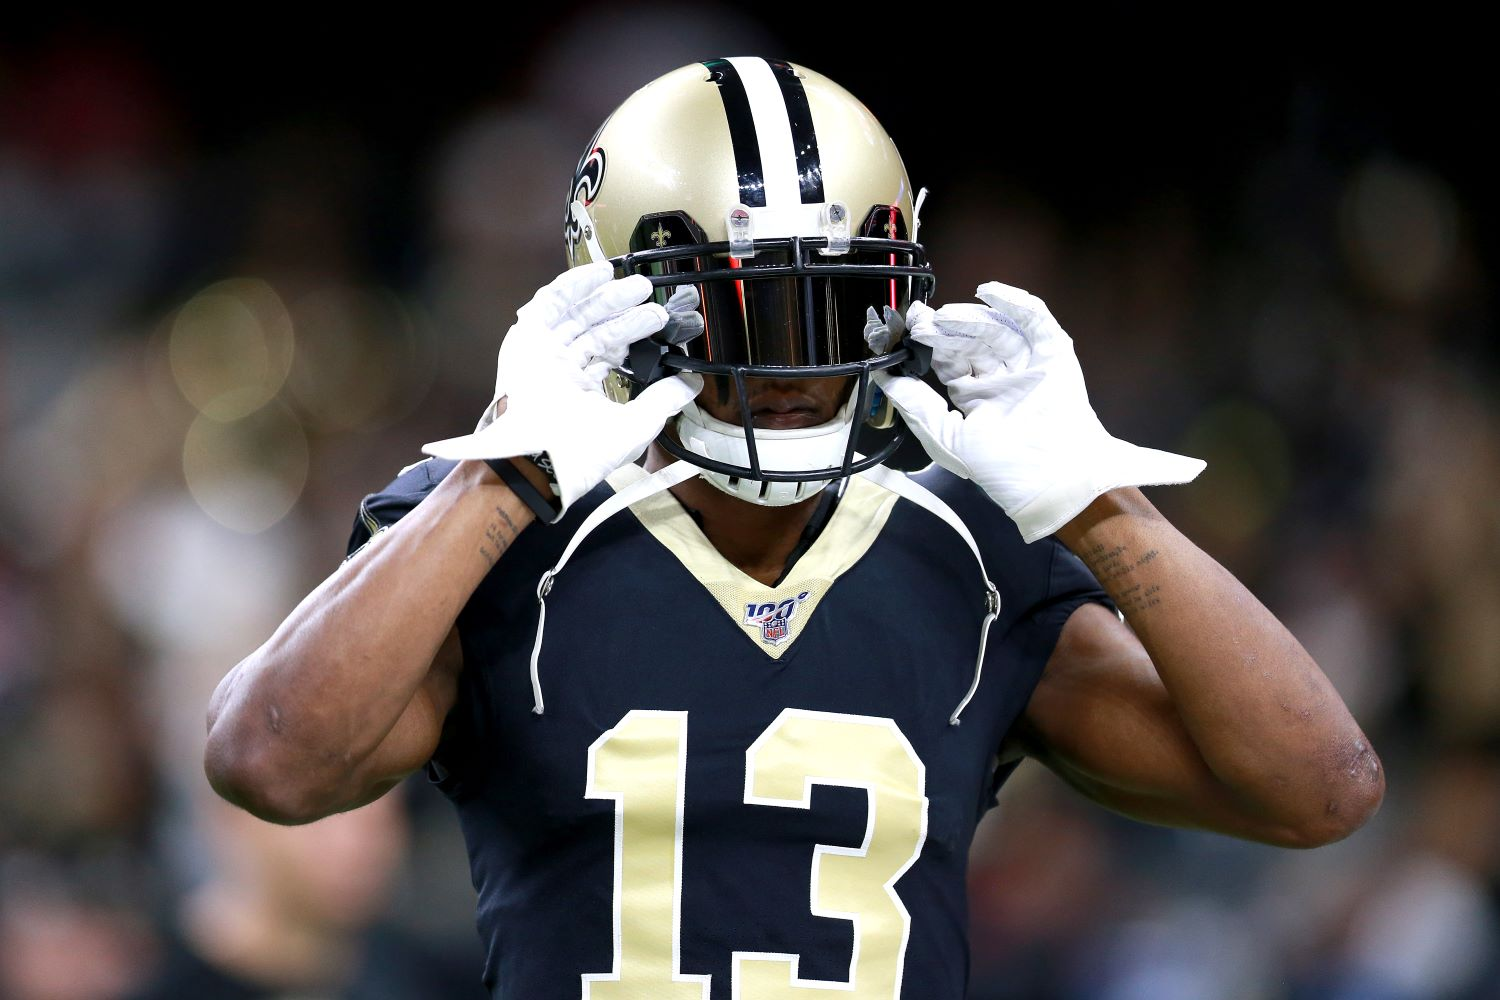 Having already missed several games because of his ankle, New Orleans Saints star Michael Thomas just suffered another injury setback.